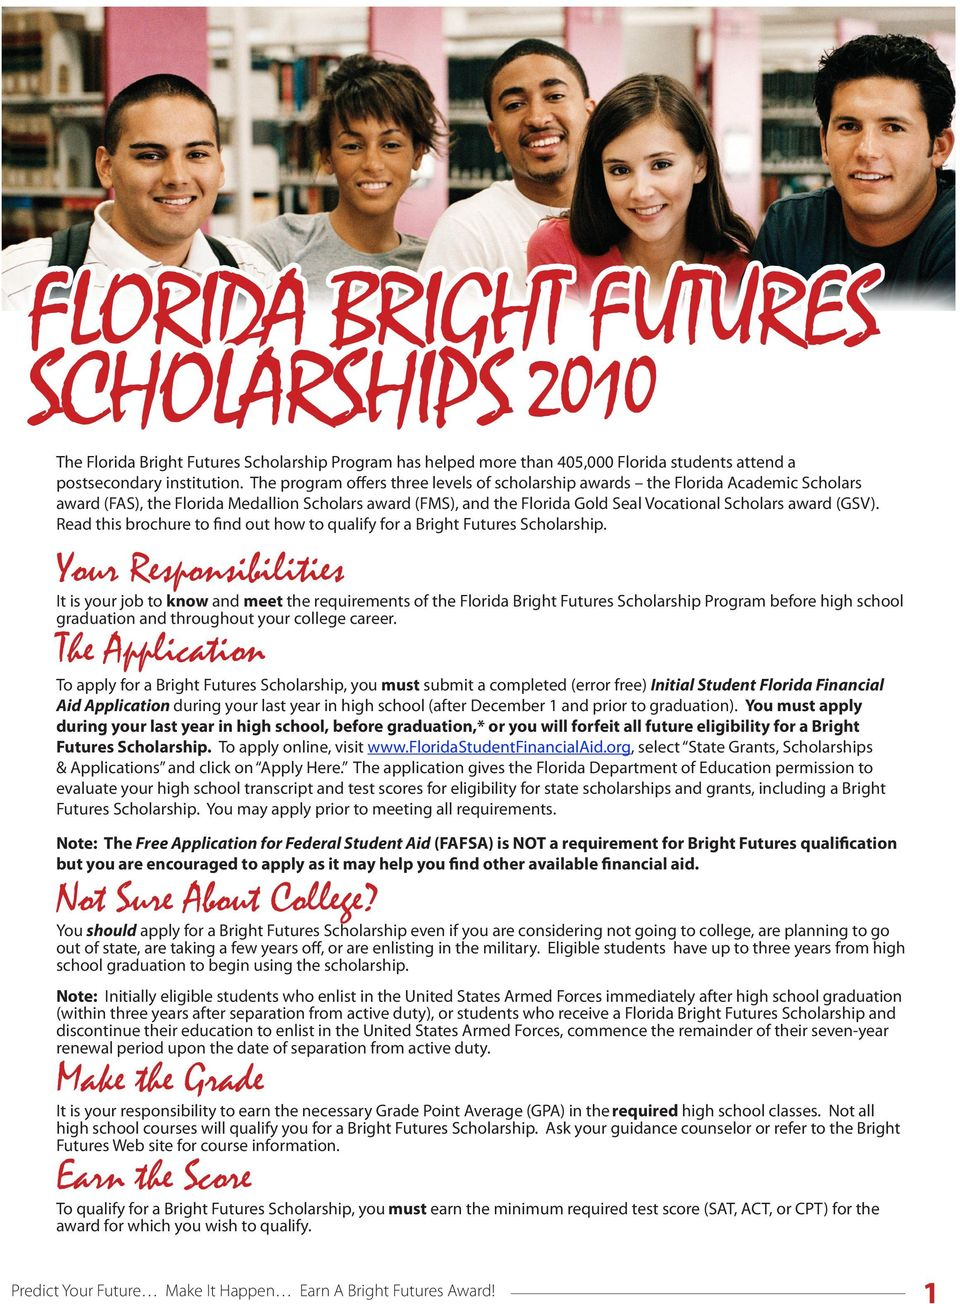 Read this brochure to find out how to qualify for a Bright Futures Scholarship.